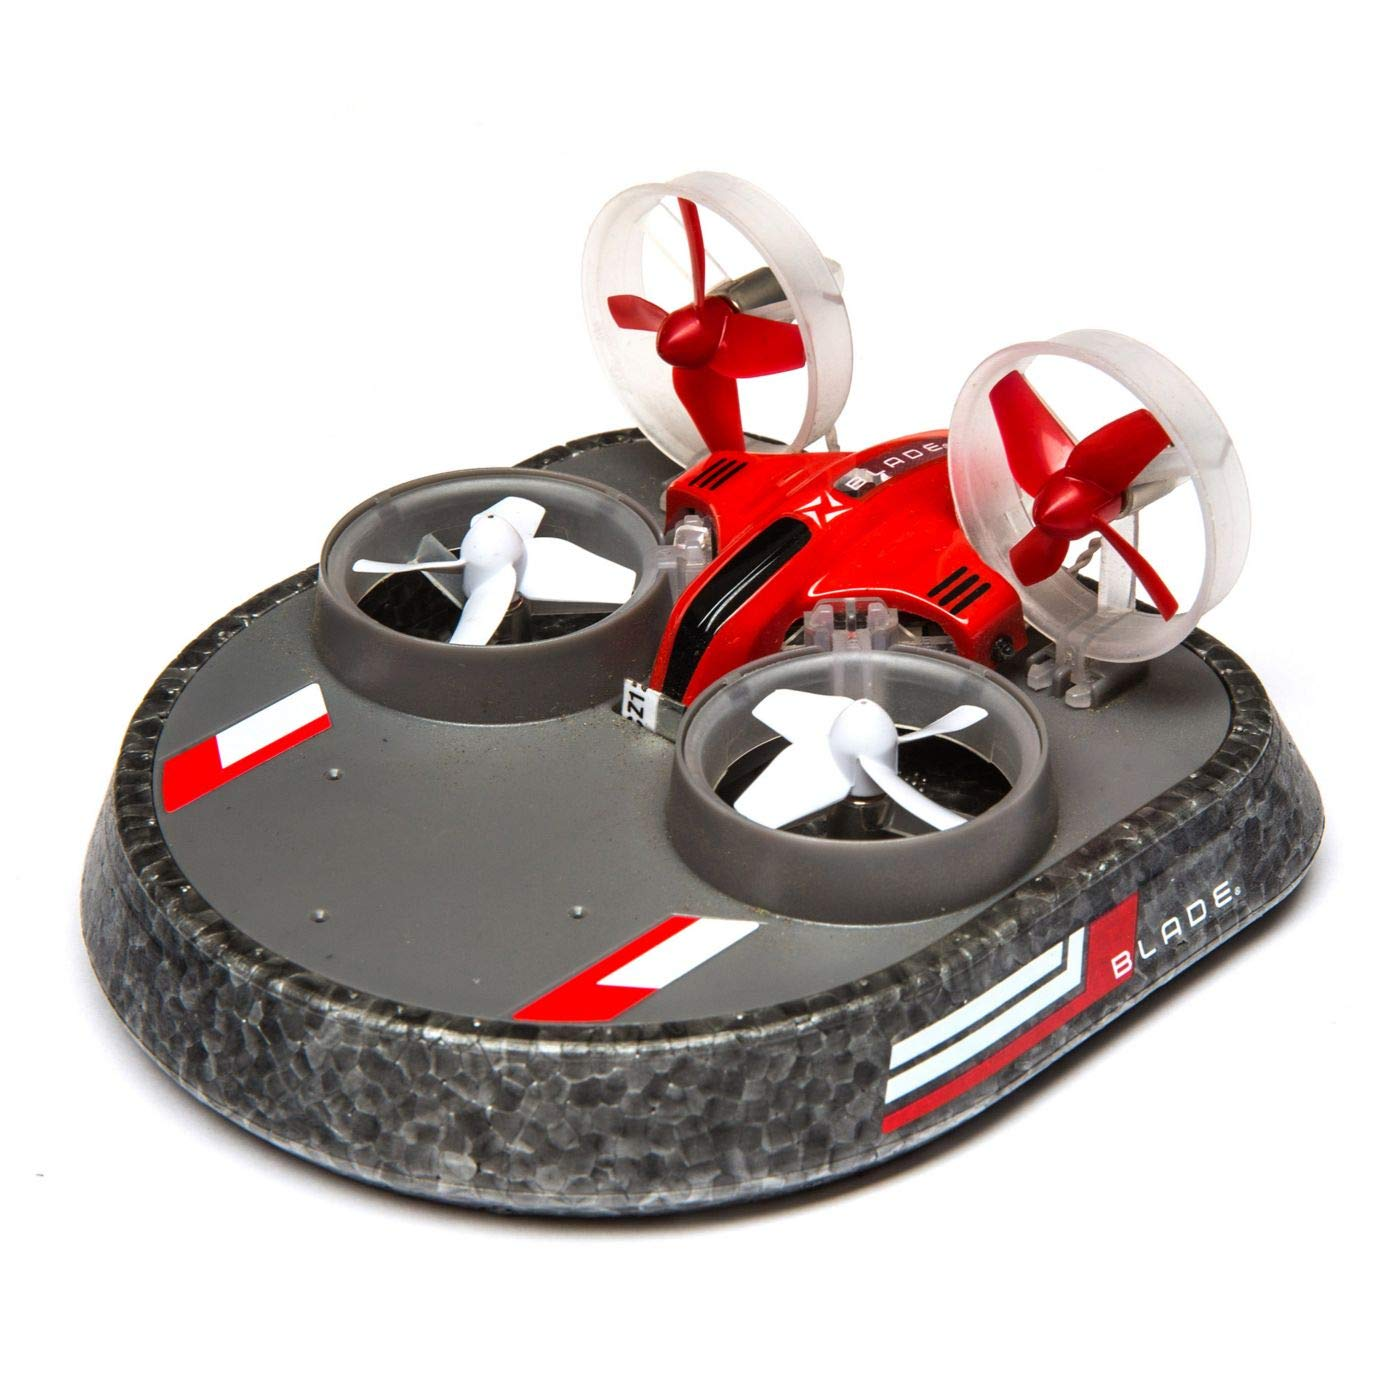 Blade Inductrix Switch Rc Micro Drone Rtf 3-in-1 (Switchable Drone, Hovercraft, Watercraft) with Led Lights, 2.4Ghz Transmitter, Battery & USB Charger: BLH9800 (Red)